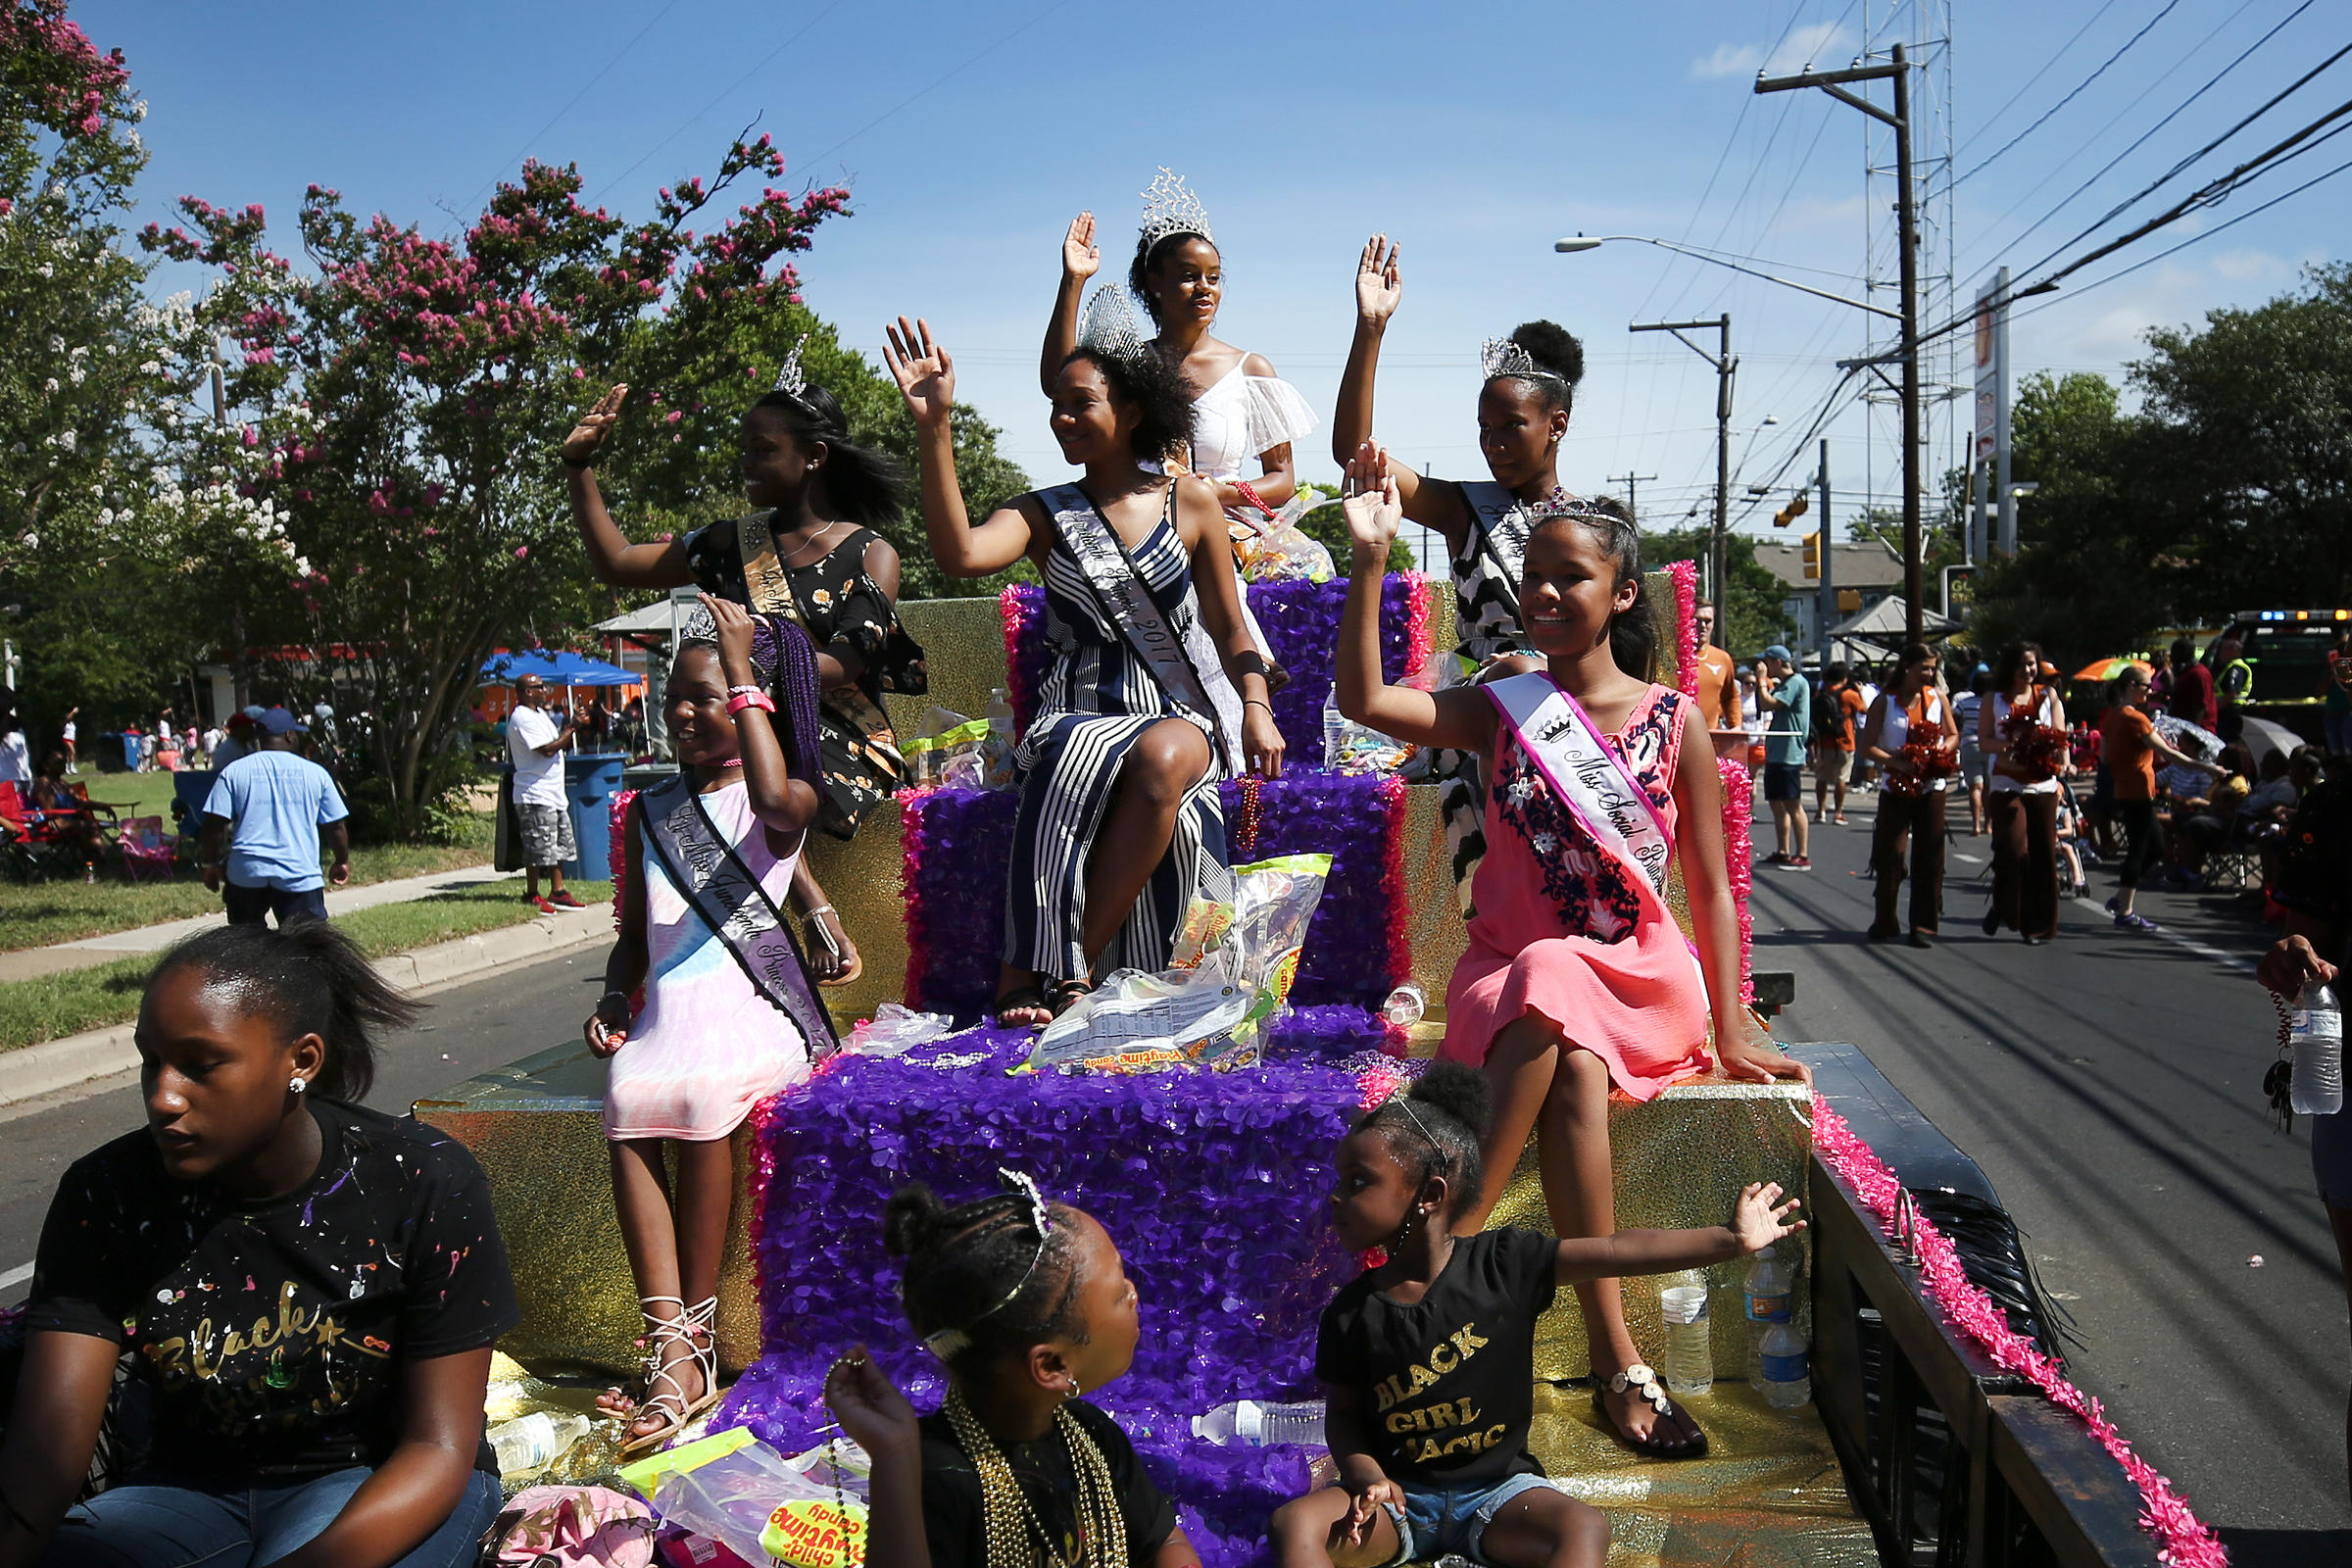 Texas cities mark Juneteenth with parades, family events